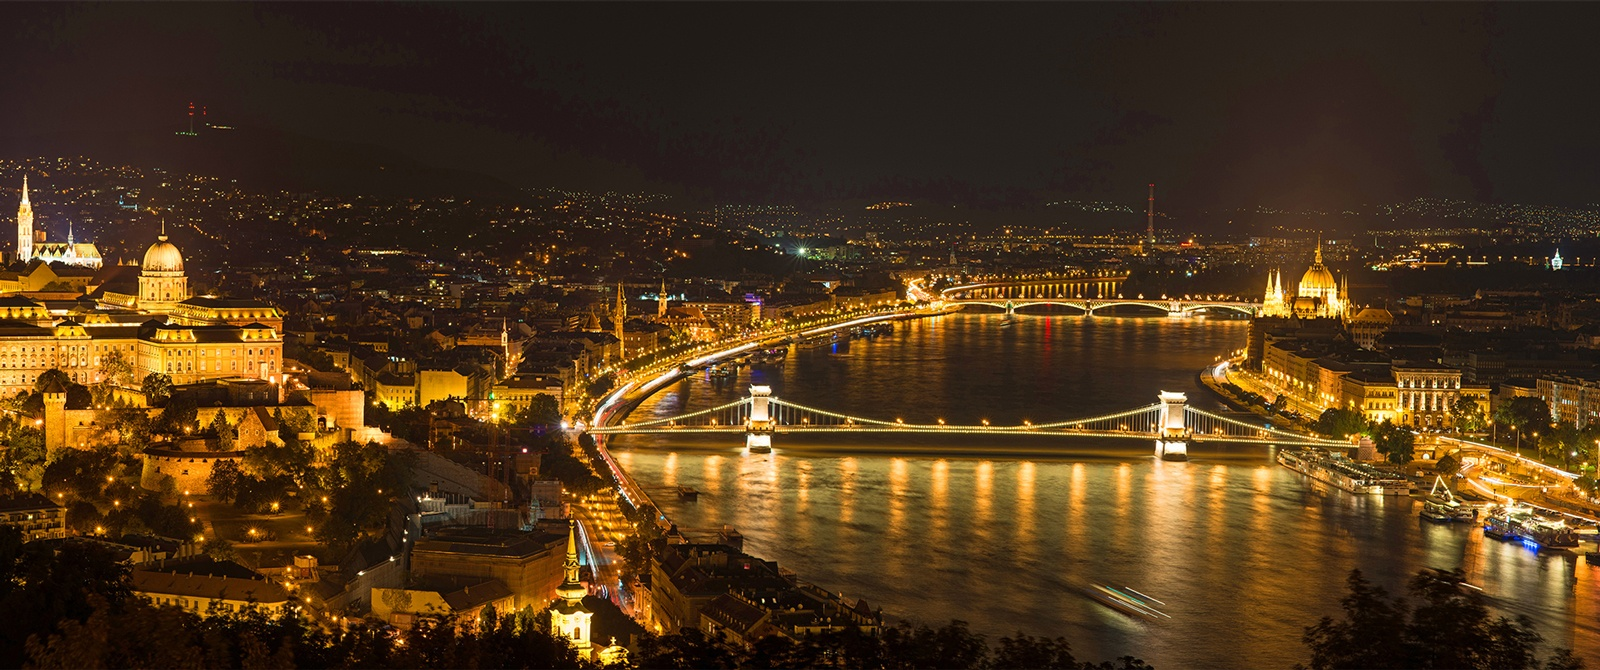 Danube River Cruise Bike Tours Amp Cycling Vacations